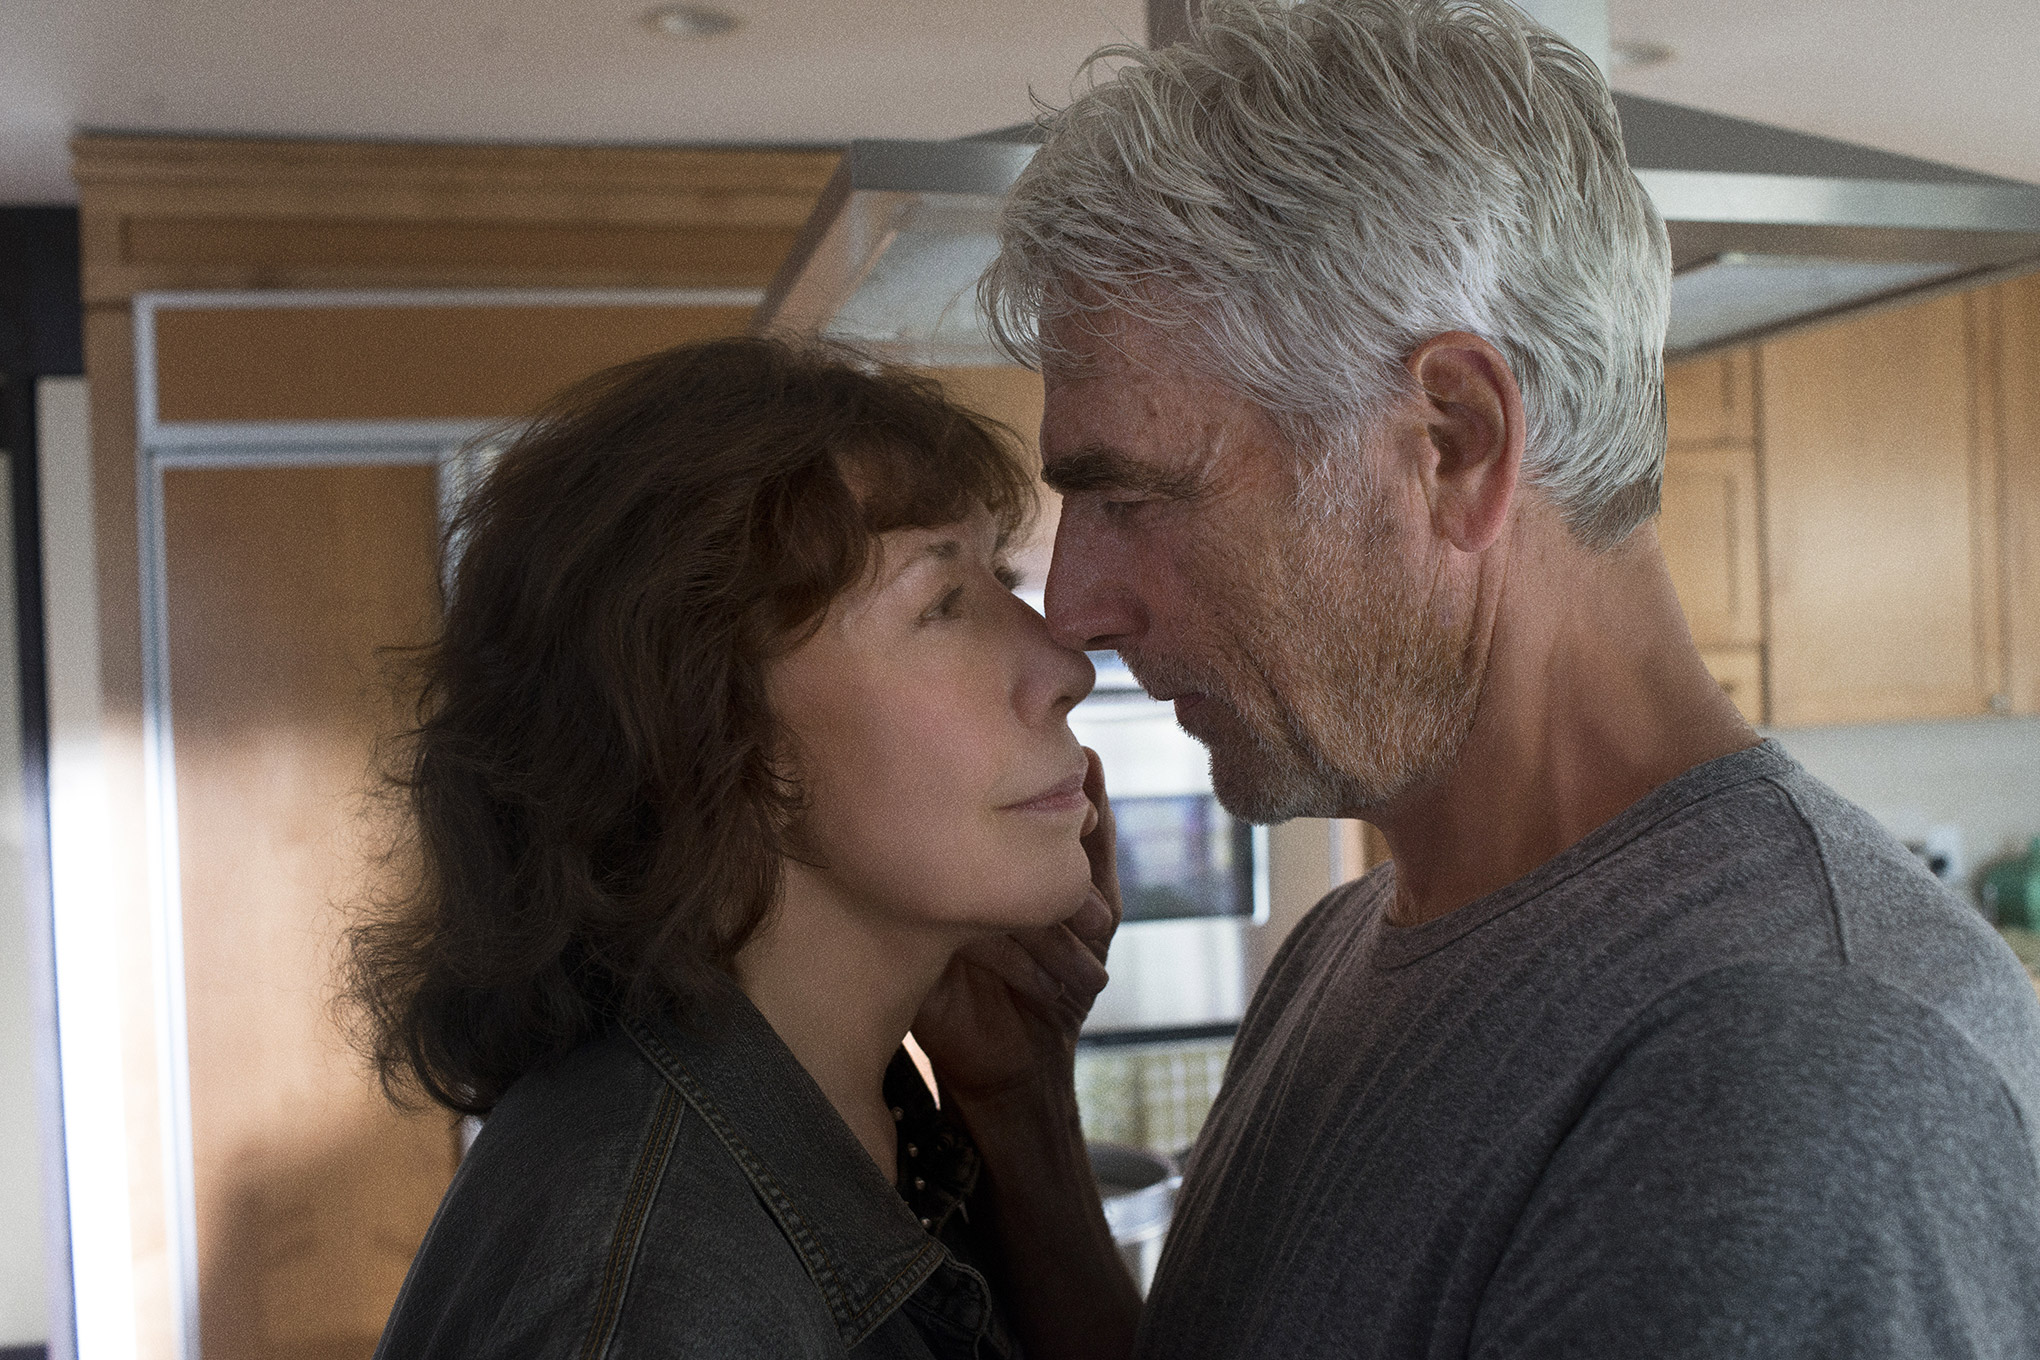 Writer/Director Paul Weitz on Making New Film 'Grandma' with the Voice of Actress Lily Tomlin